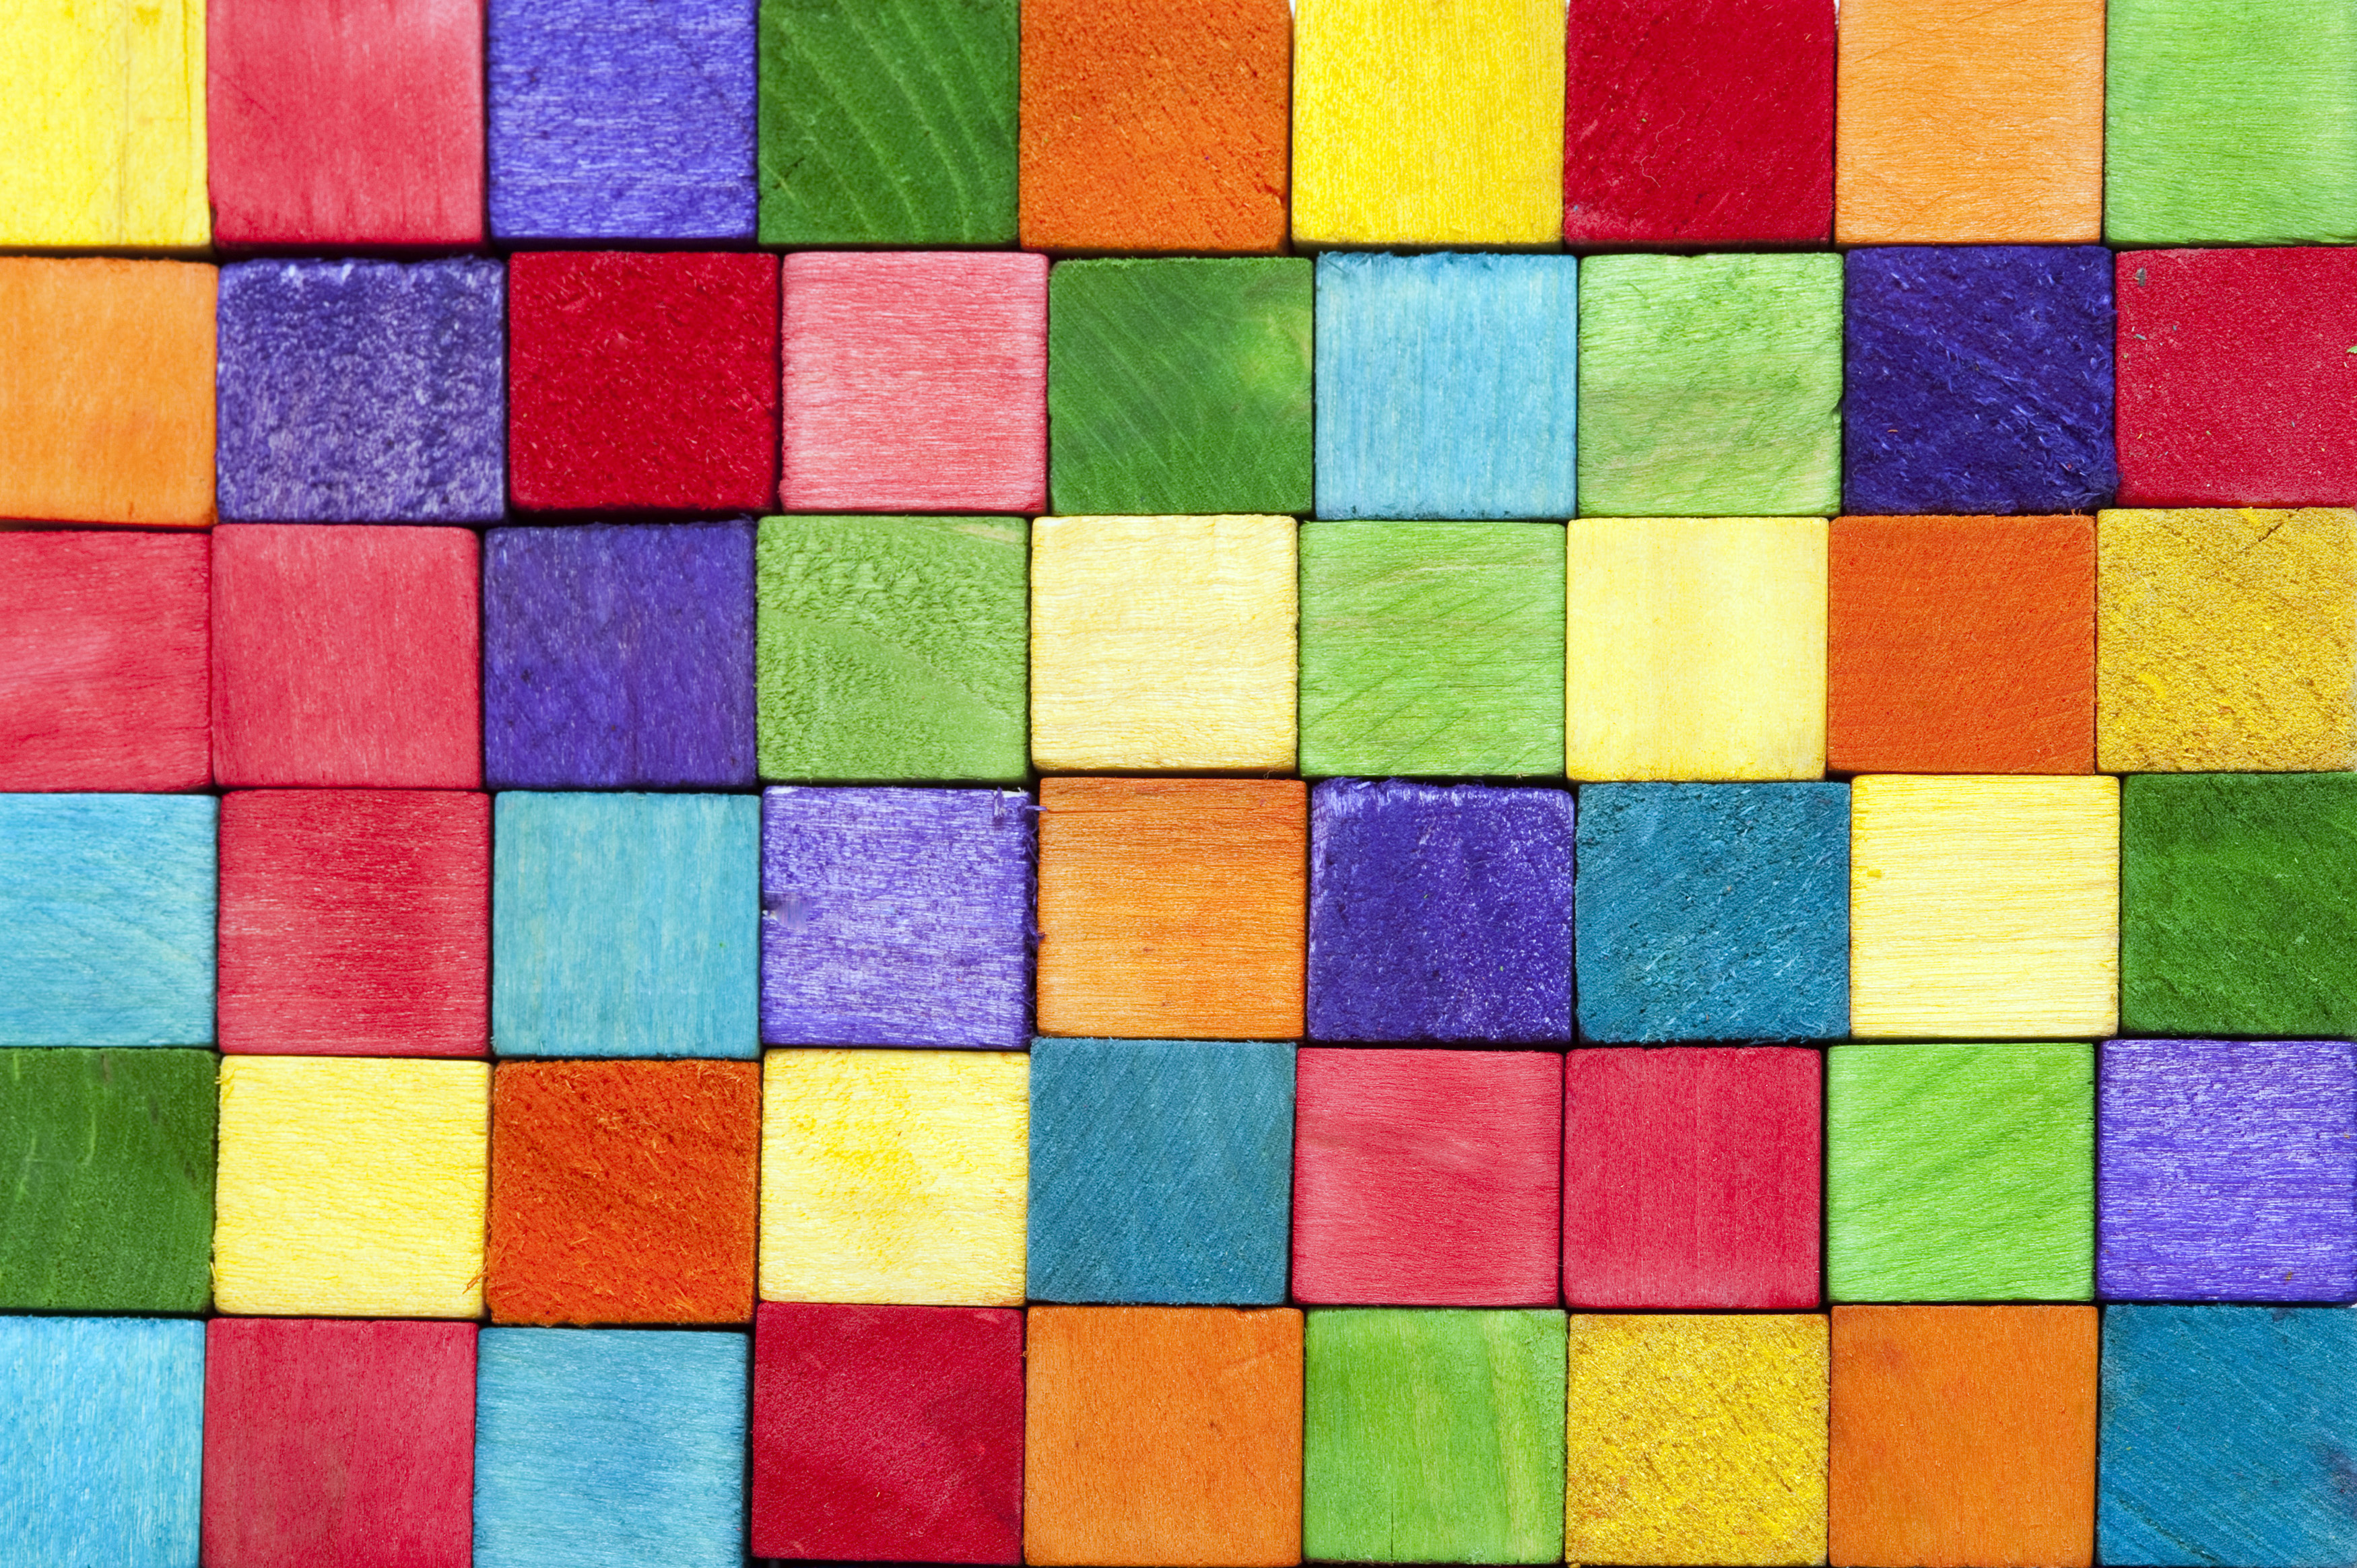 Free Stock Photo 11948 Colorful background texture of wooden